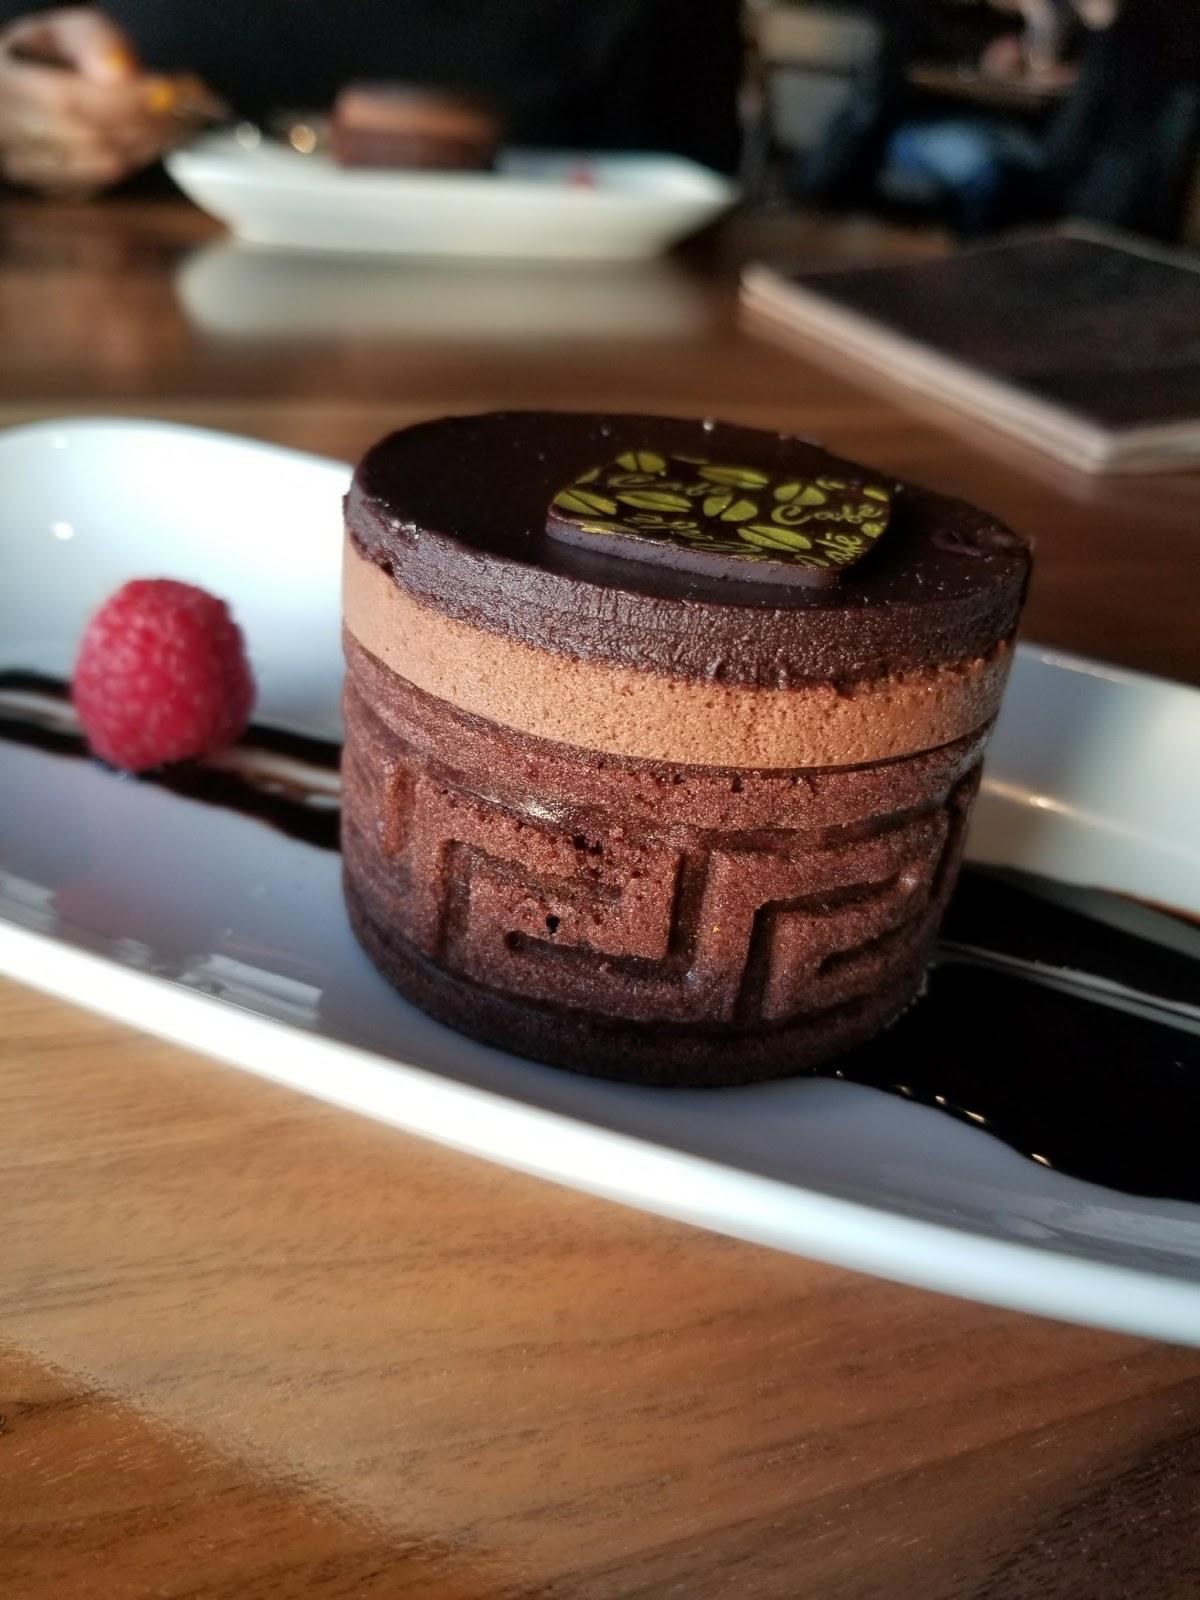 Chocolate cake dessert hyatt regency lake washington kfclovesyou